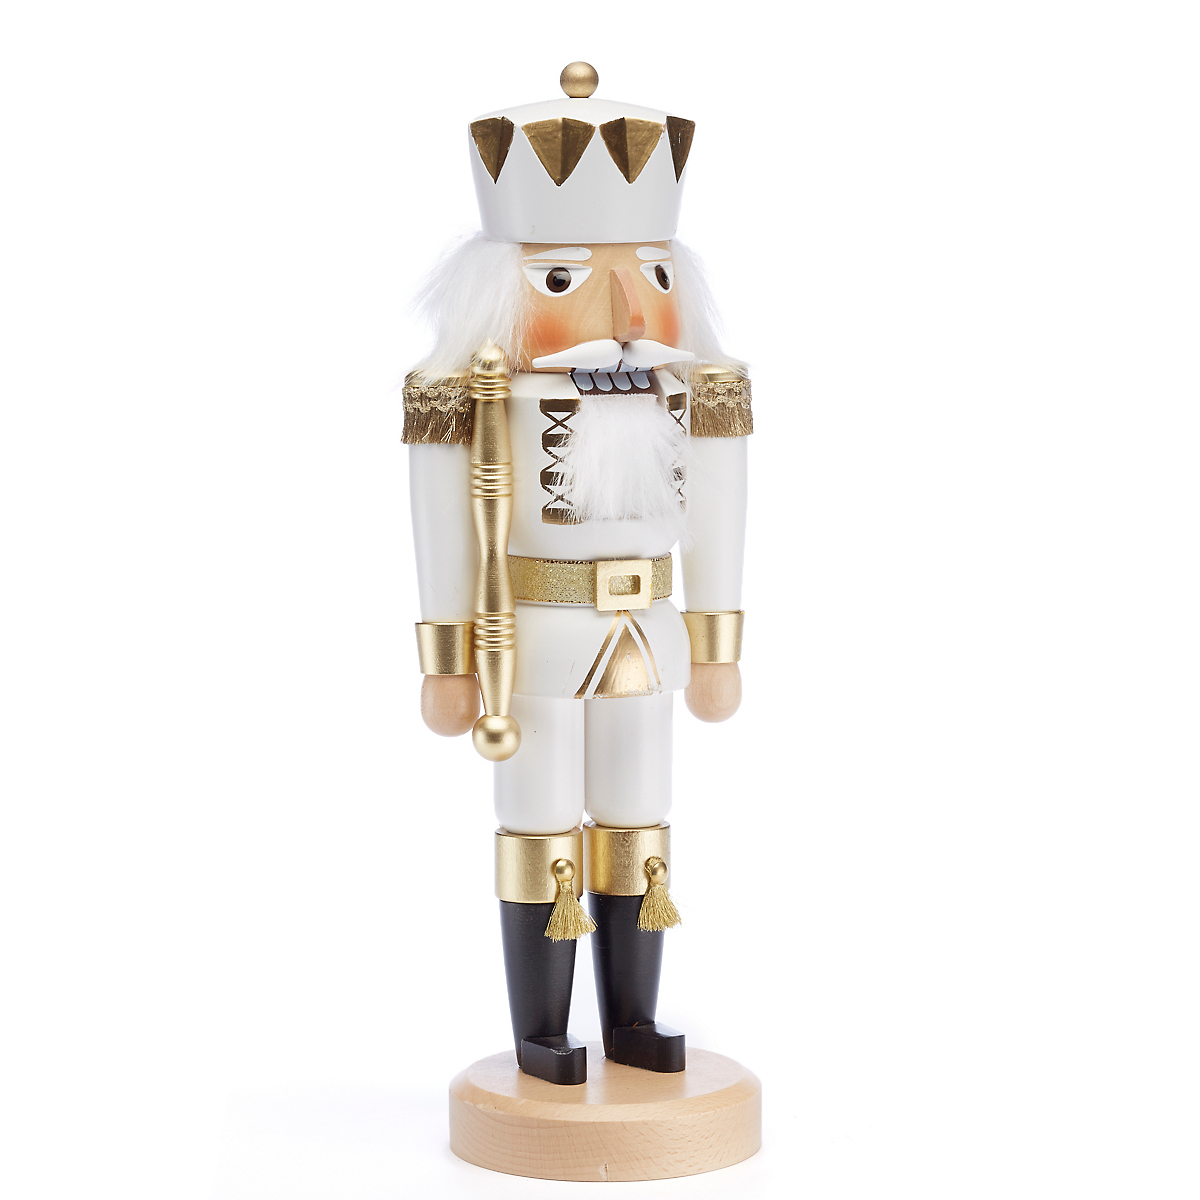 Limited-Edition Snow King Nutcracker